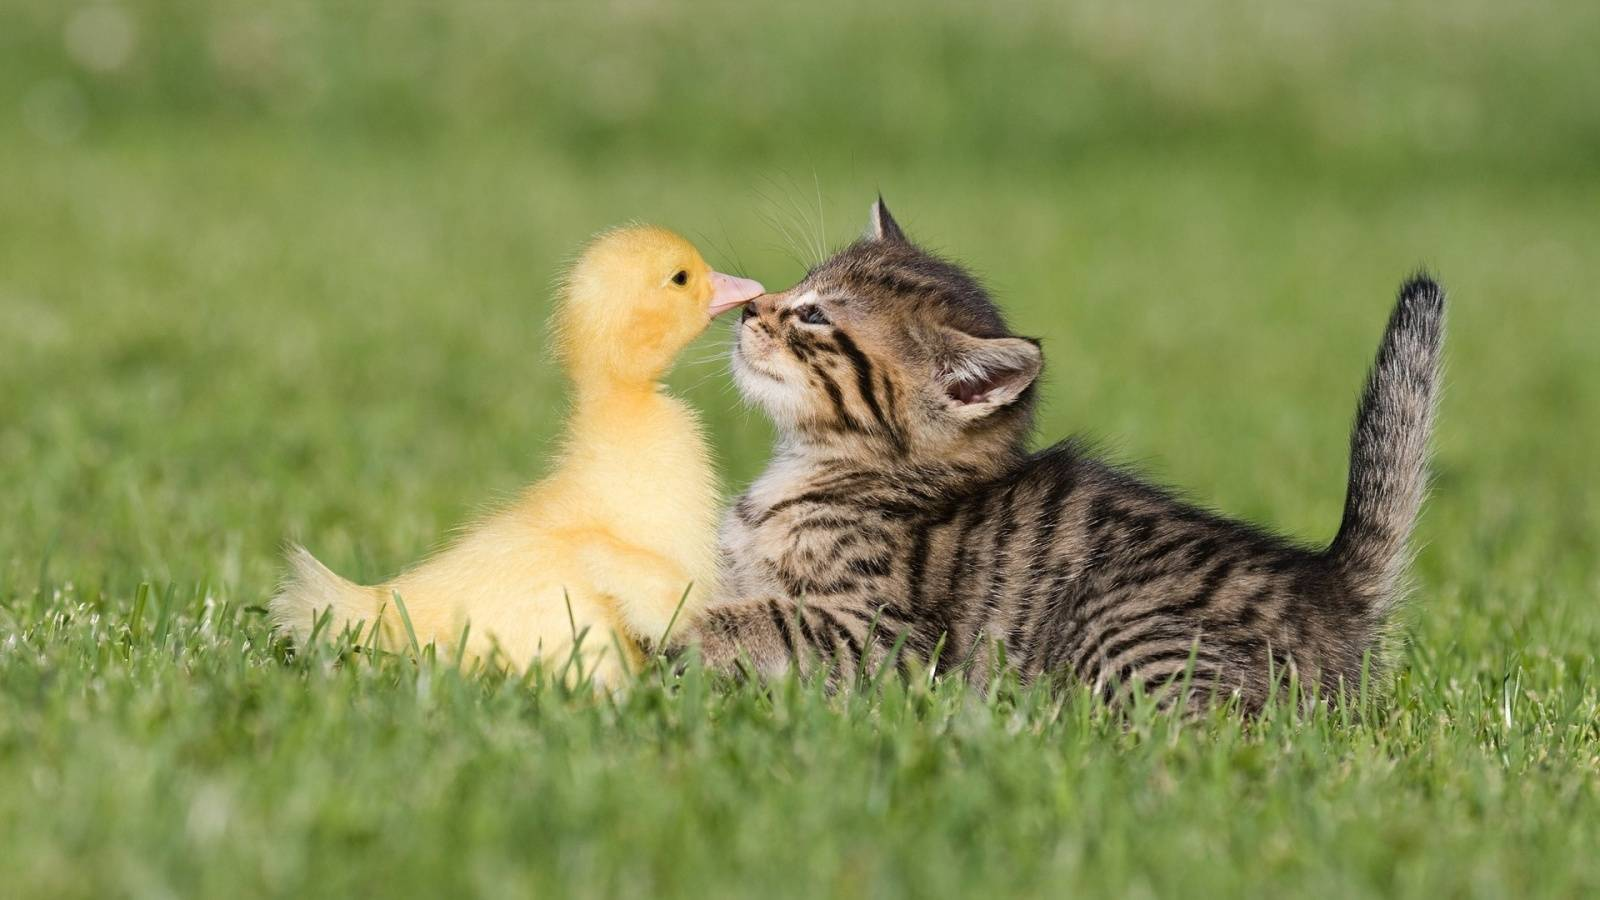 cats-birds-friends